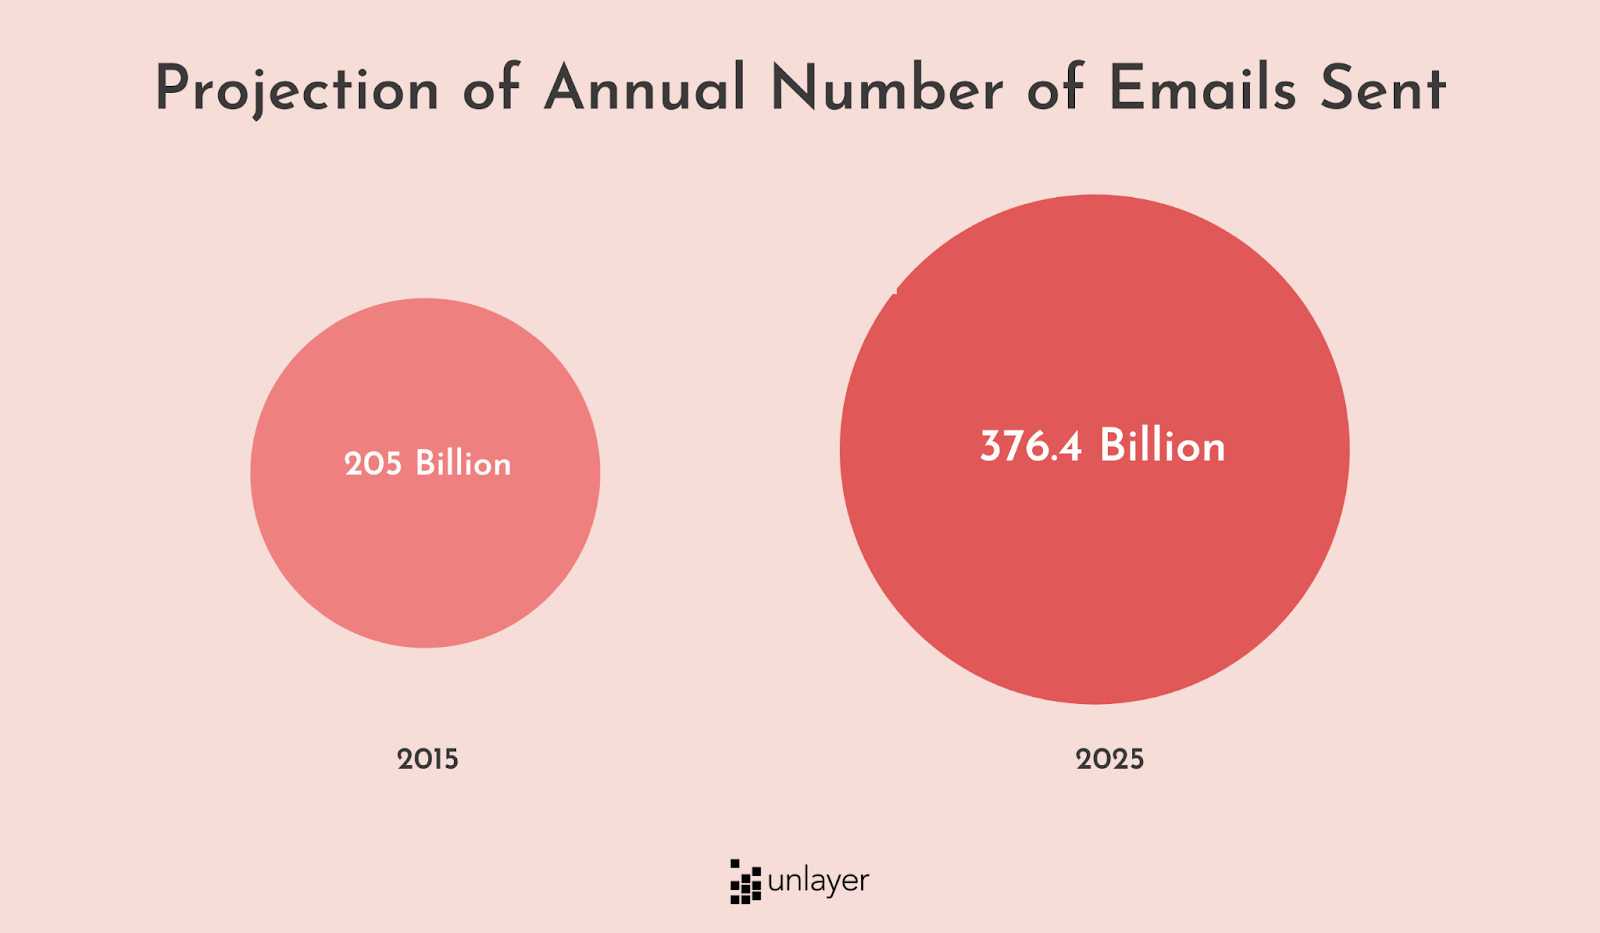 Annual number of emails sent